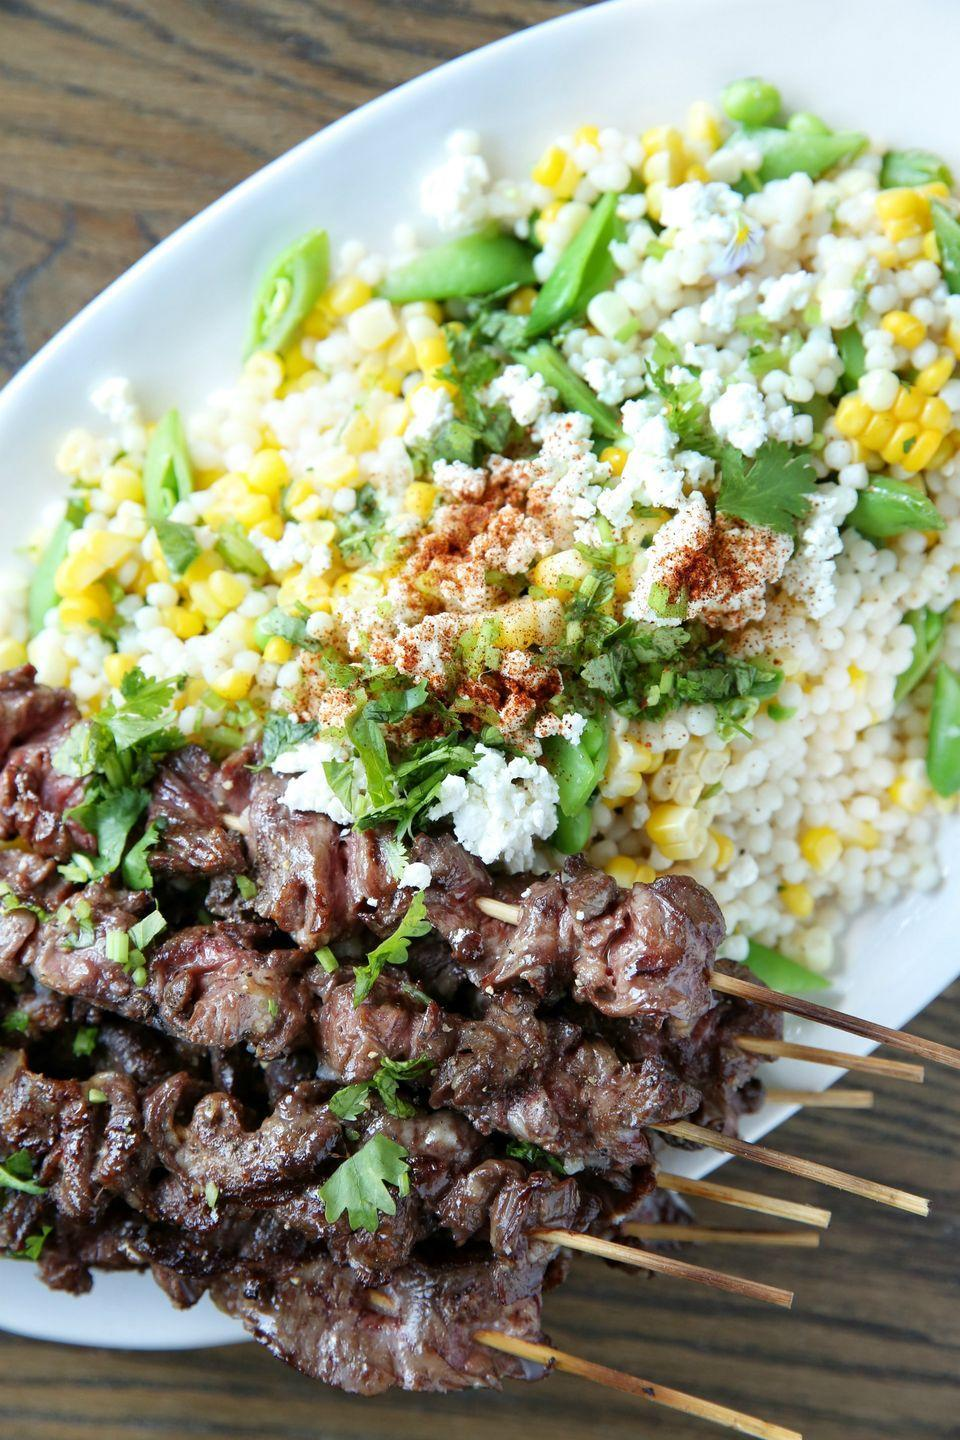 """<p>Step up your summer dinner game with grilled steak kabobs and elote-inspired salad.</p><p>Get the recipe from <a href=""""https://www.delish.com/cooking/recipe-ideas/recipes/a48350/steak-skewers-with-mexican-corn-couscous-salad-recipe/"""" rel=""""nofollow noopener"""" target=""""_blank"""" data-ylk=""""slk:Delish"""" class=""""link rapid-noclick-resp"""">Delish</a>.</p>"""